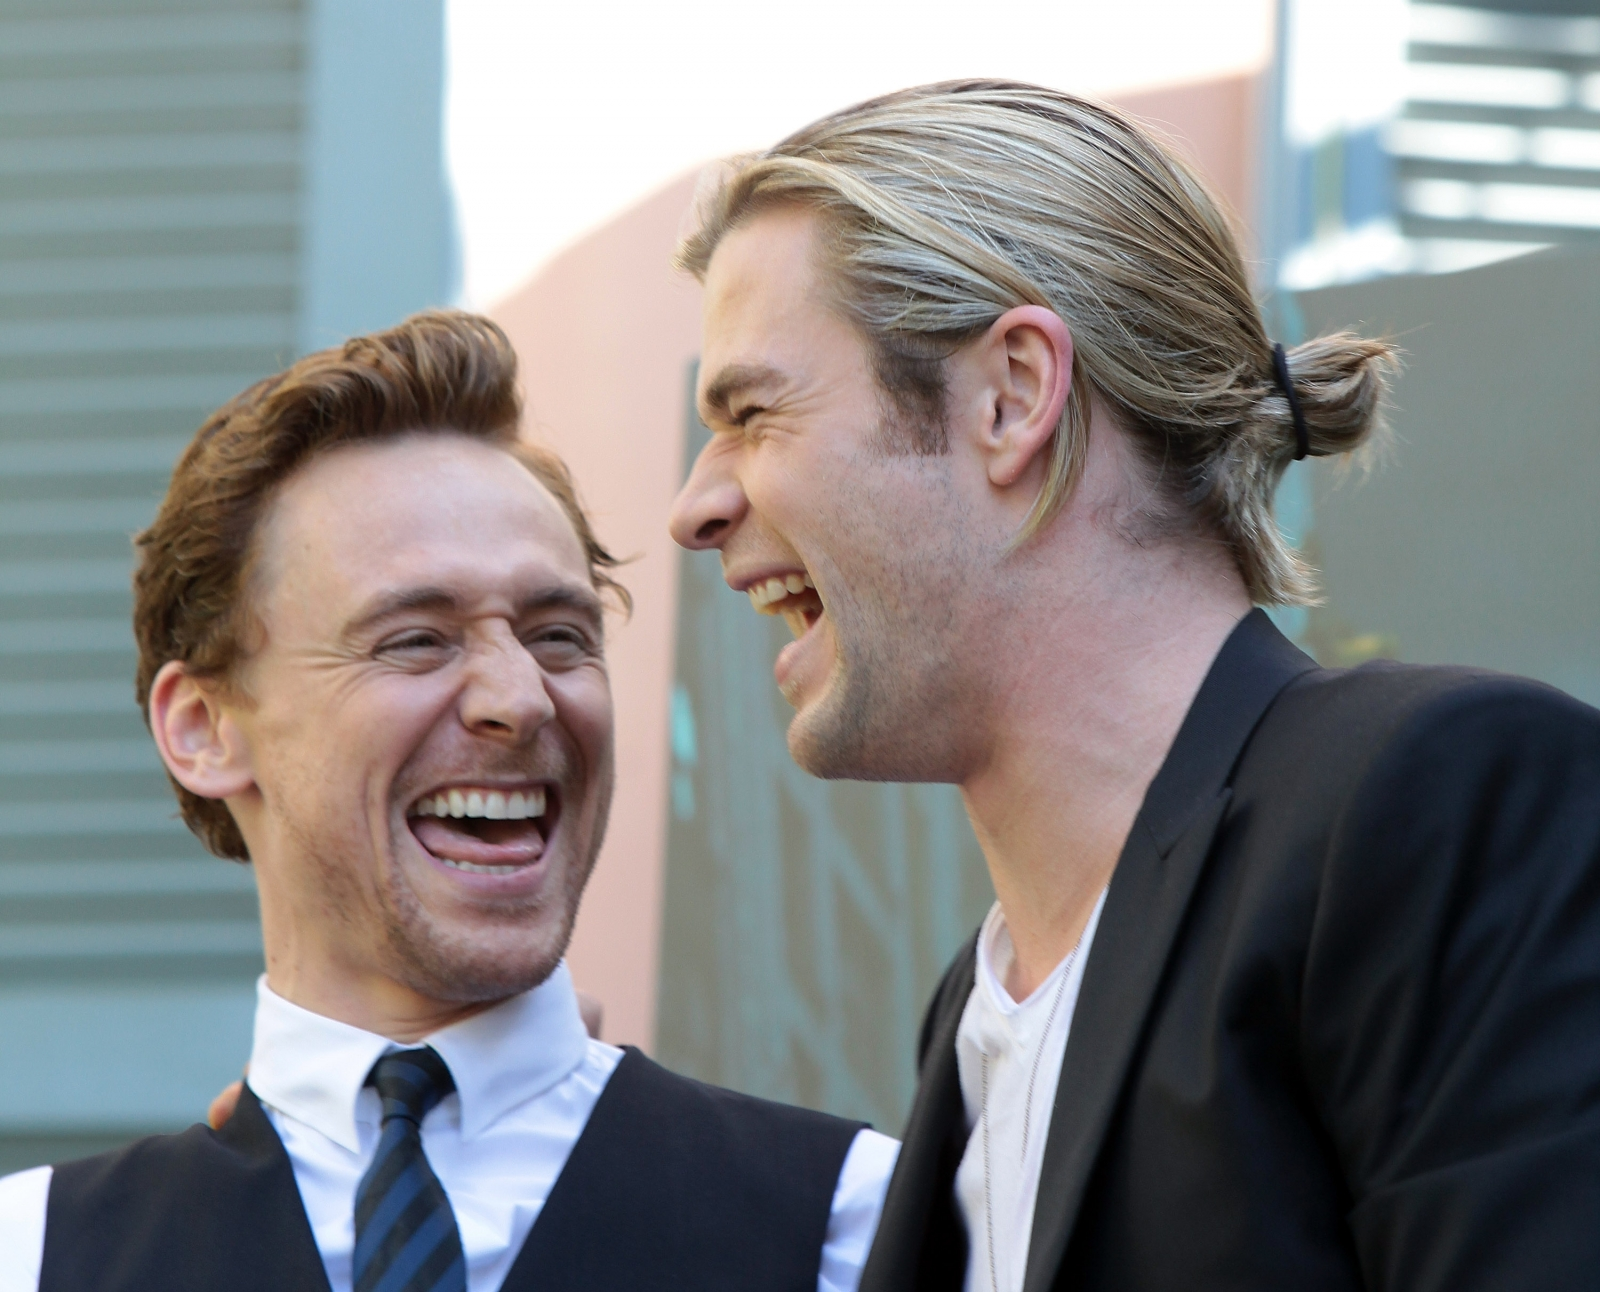 Thor, Loki meet real heroes